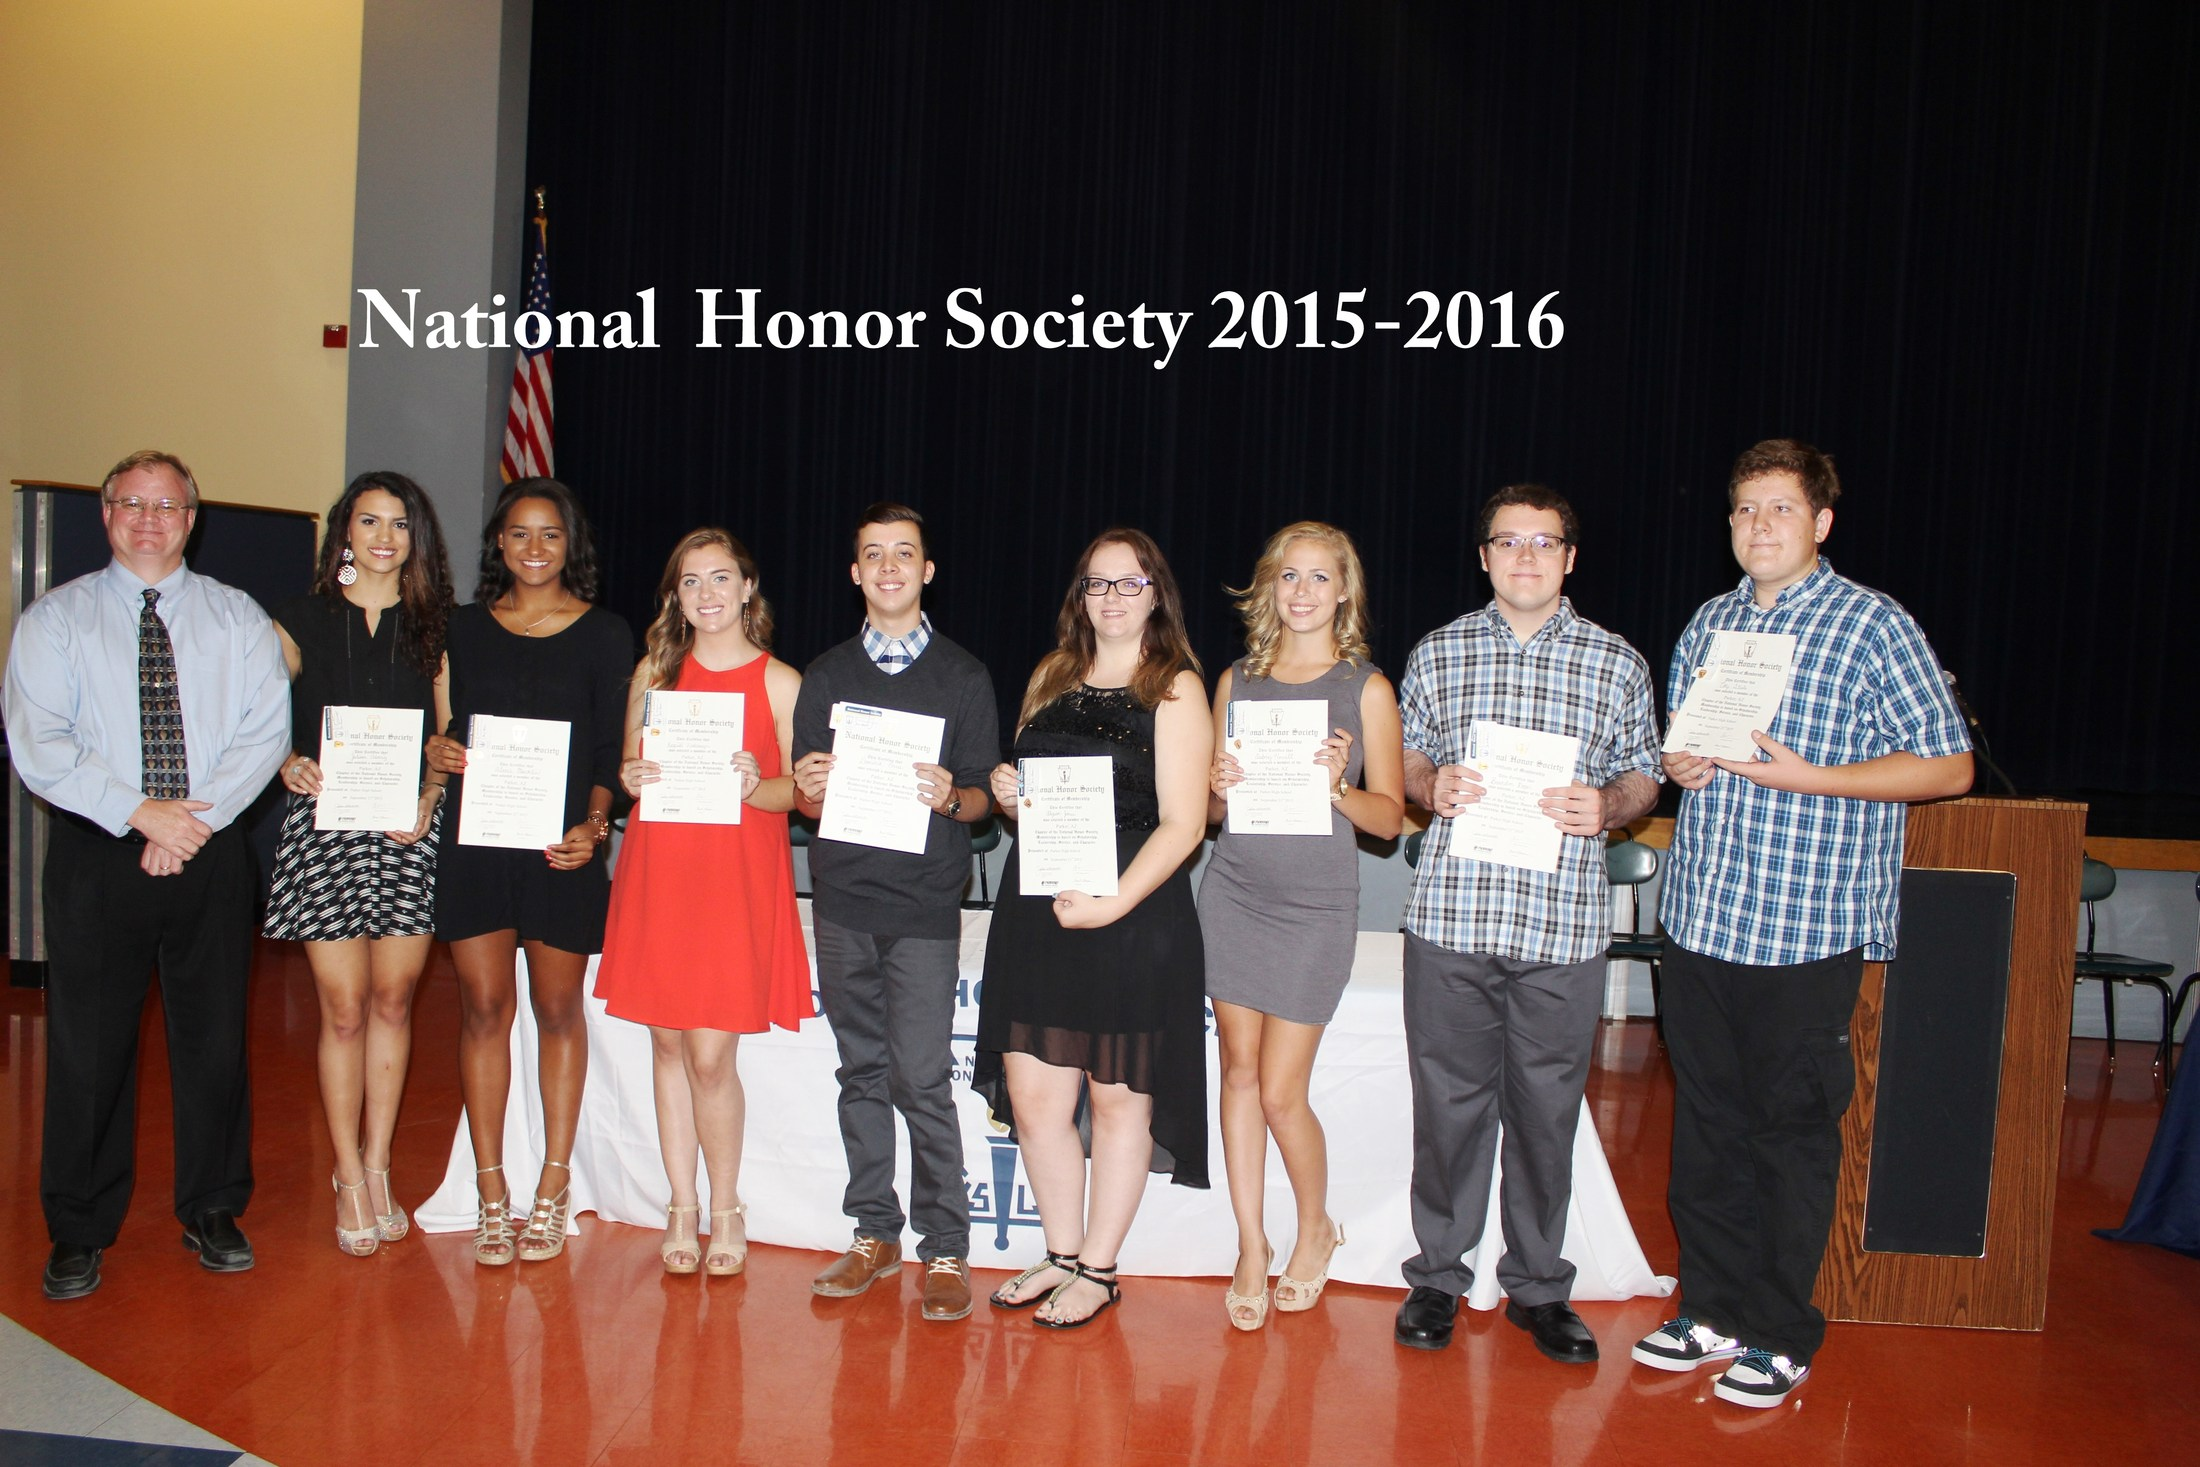 Honor society photo